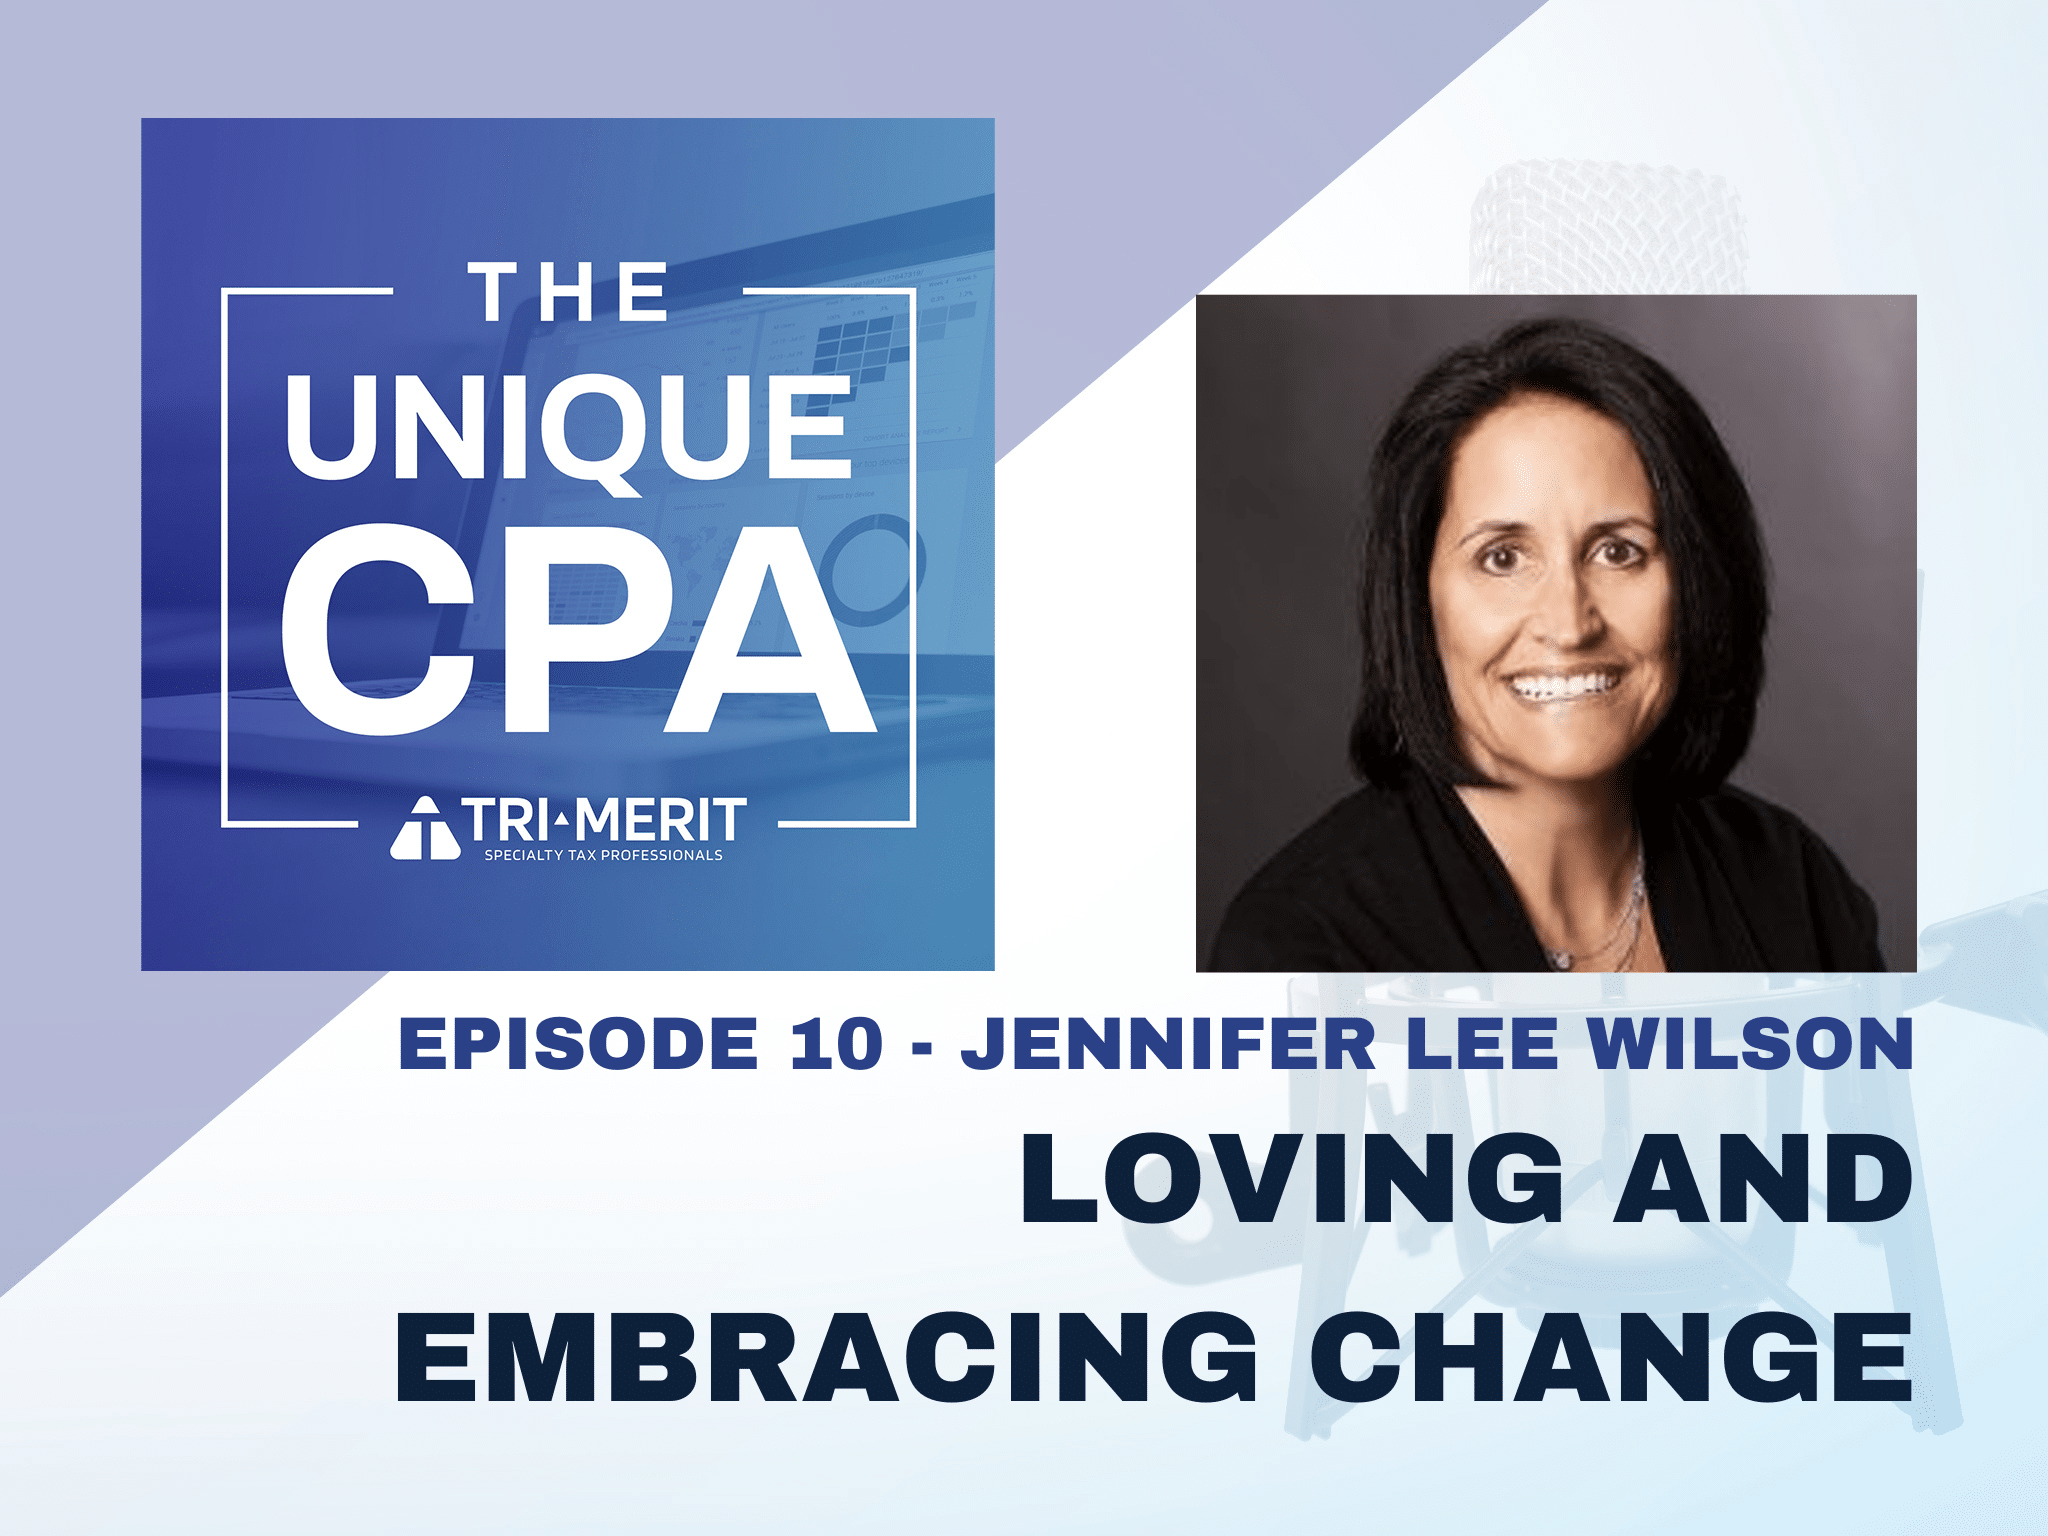 The Unique CPA Feature Image Ep 10 - Loving and Embracing Change - Tri-Merit